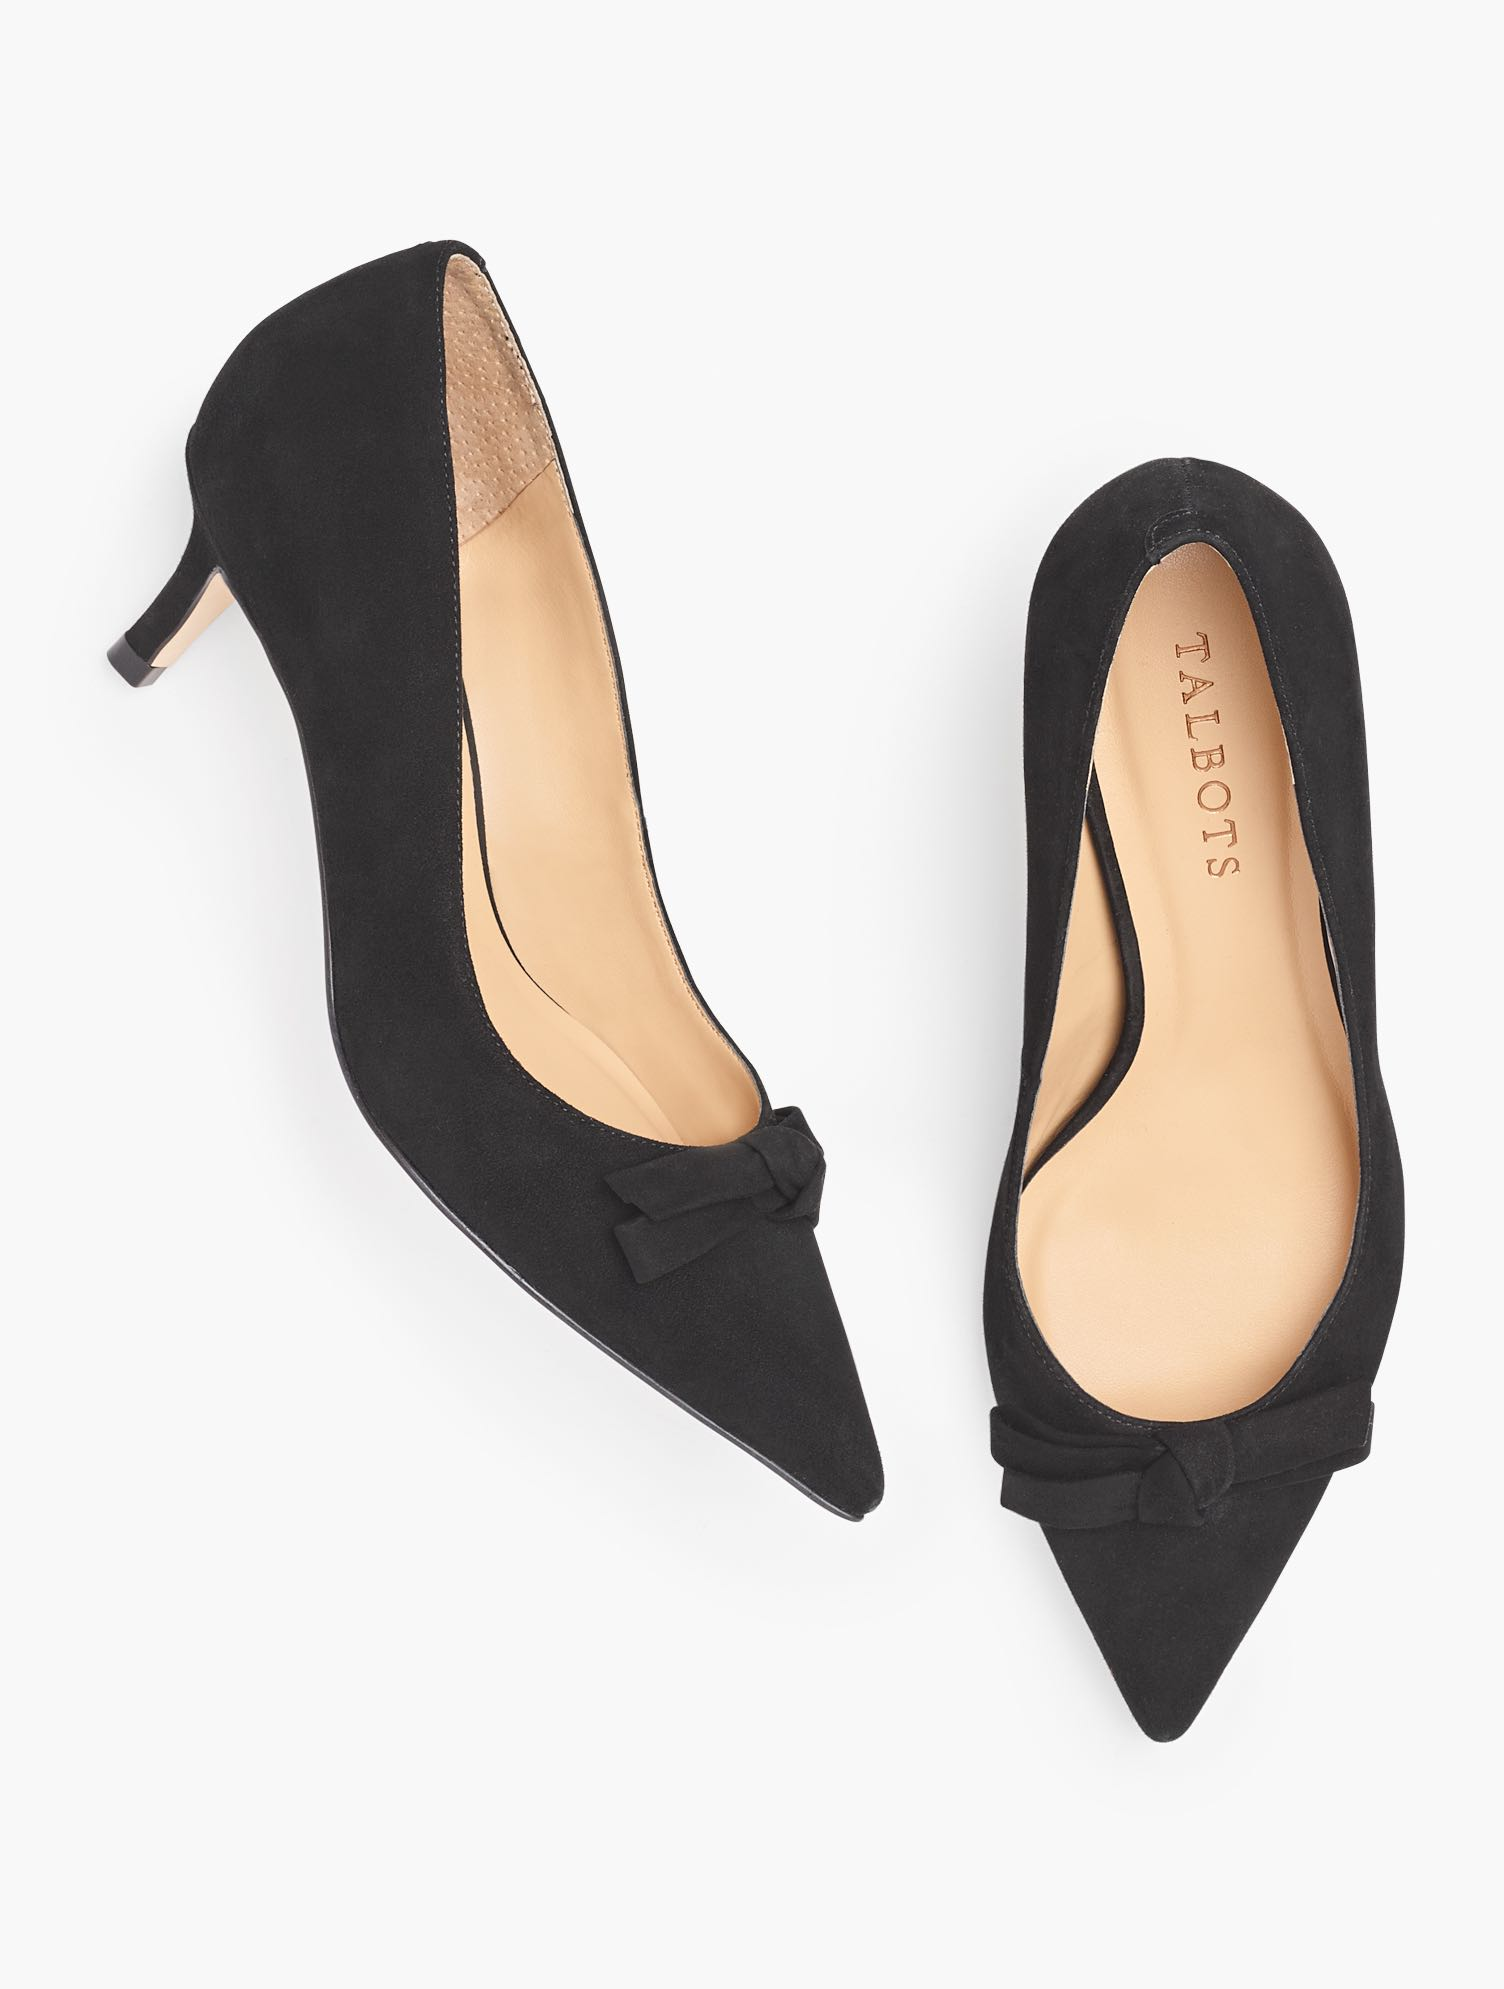 The Erica, with a two-inch kitten heel and an elegant bow at vamp. In supple suede. Features Gift Box/Gift Wrap is not available for this item Pointy toe 2 inches heel 3Mm Memory Foam Imported Material: 100% Leather Erica Bow Detail Kitten Heel Pumps - Suede - Black - 11M Talbots